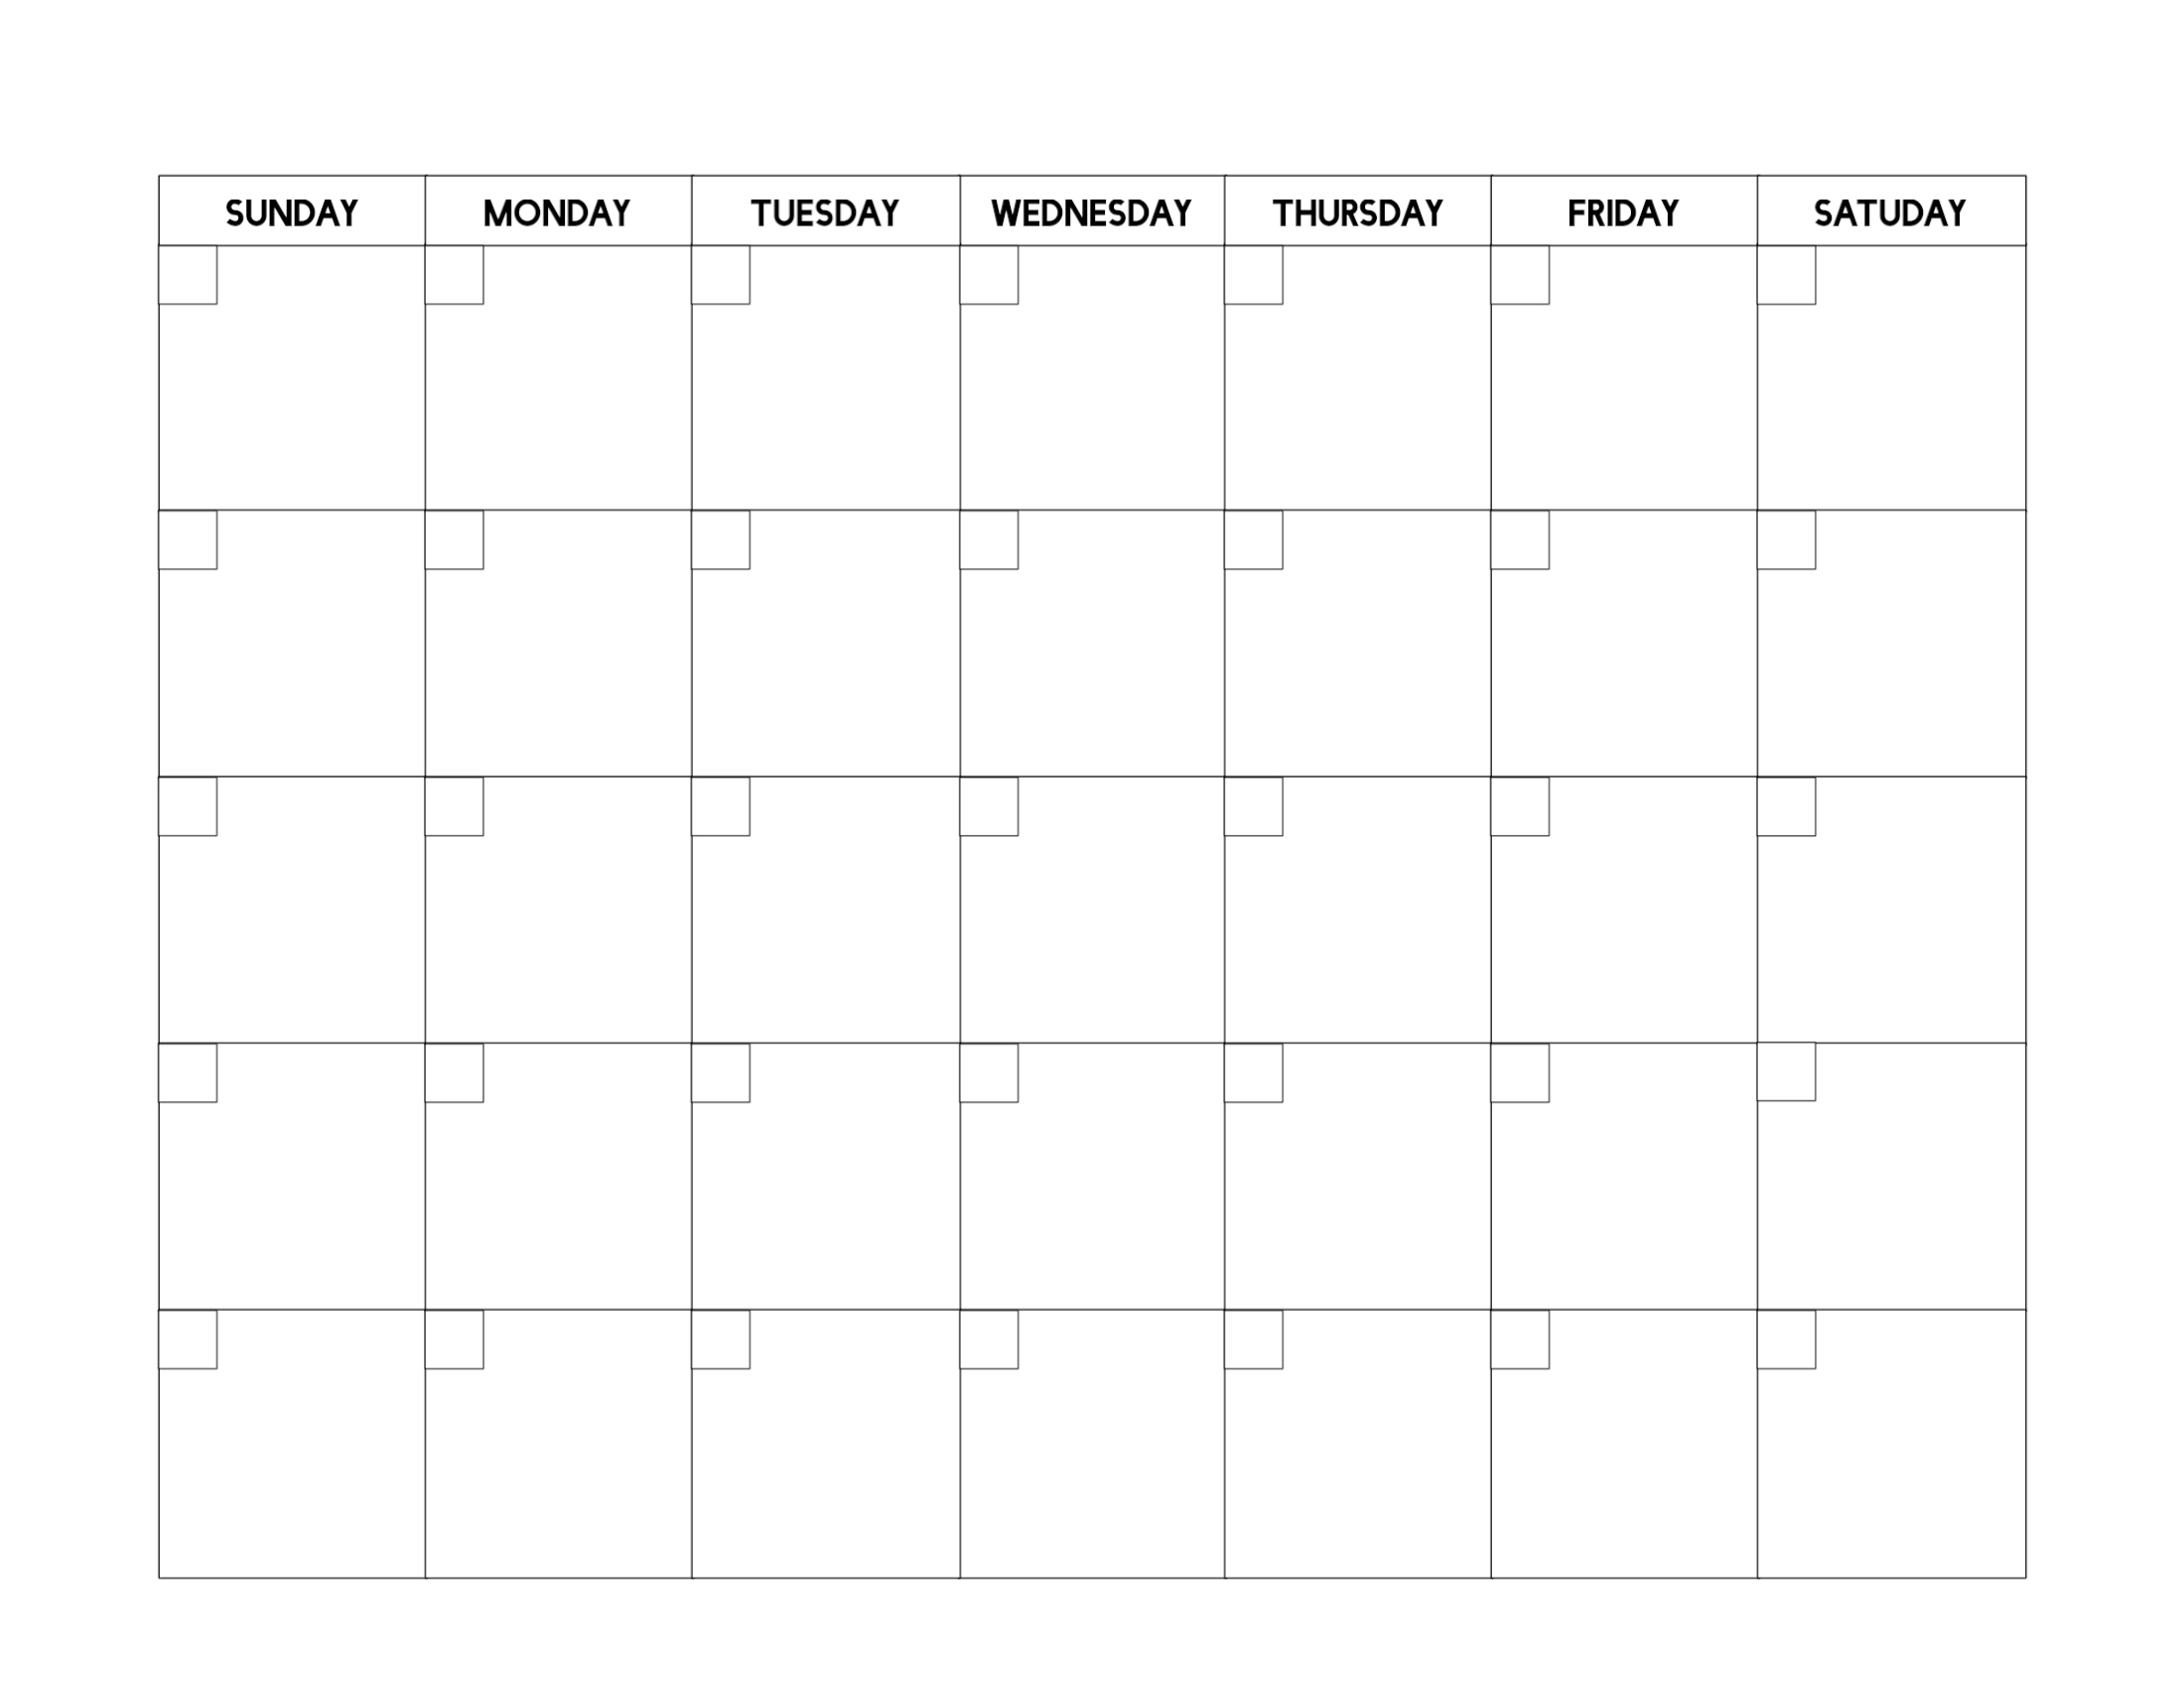 Free Printable Blank Calendar Template - Paper Trail Design Free Calendars To Fill Out And Print